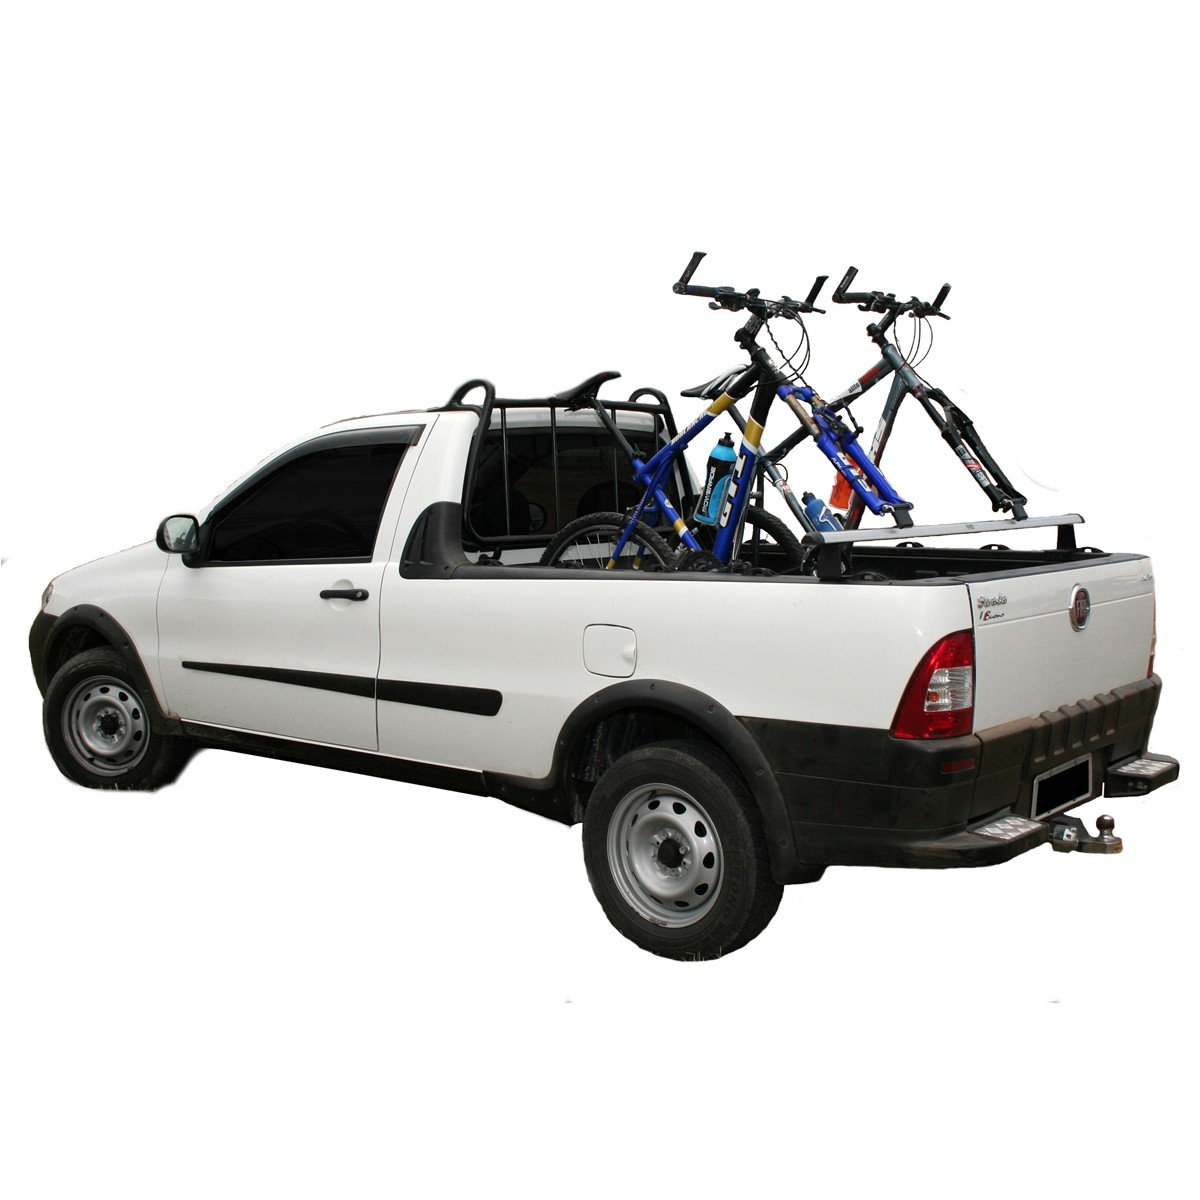 Rack Travessa de Caçamba Pick-up - Kiussi Vesuvio 180cm - Prata